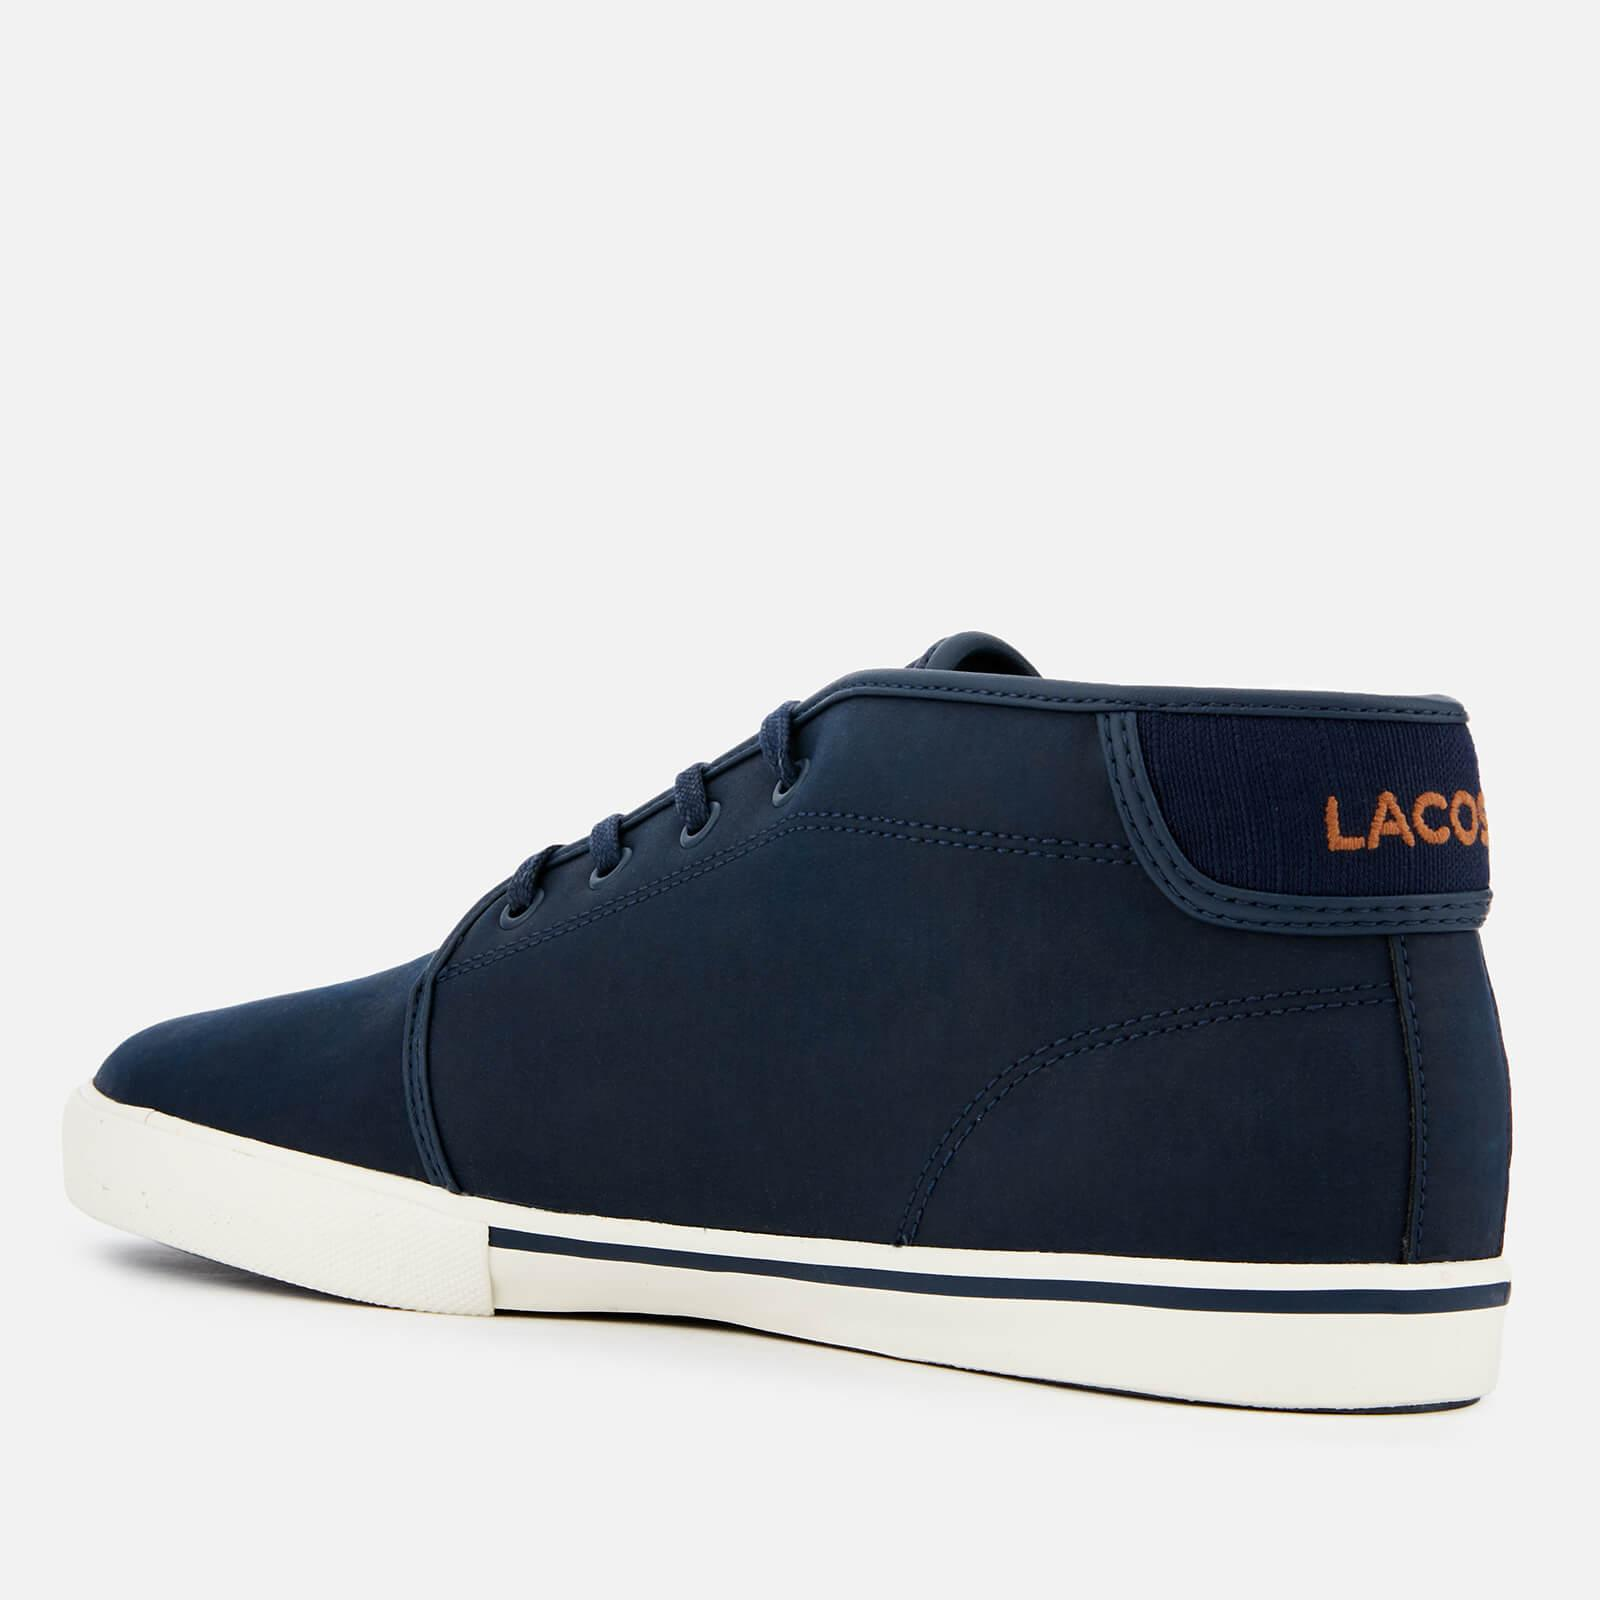 53fce98daee92 Lacoste - Blue Ampthill 119 1 Leather Chukka Trainers for Men - Lyst. View  fullscreen